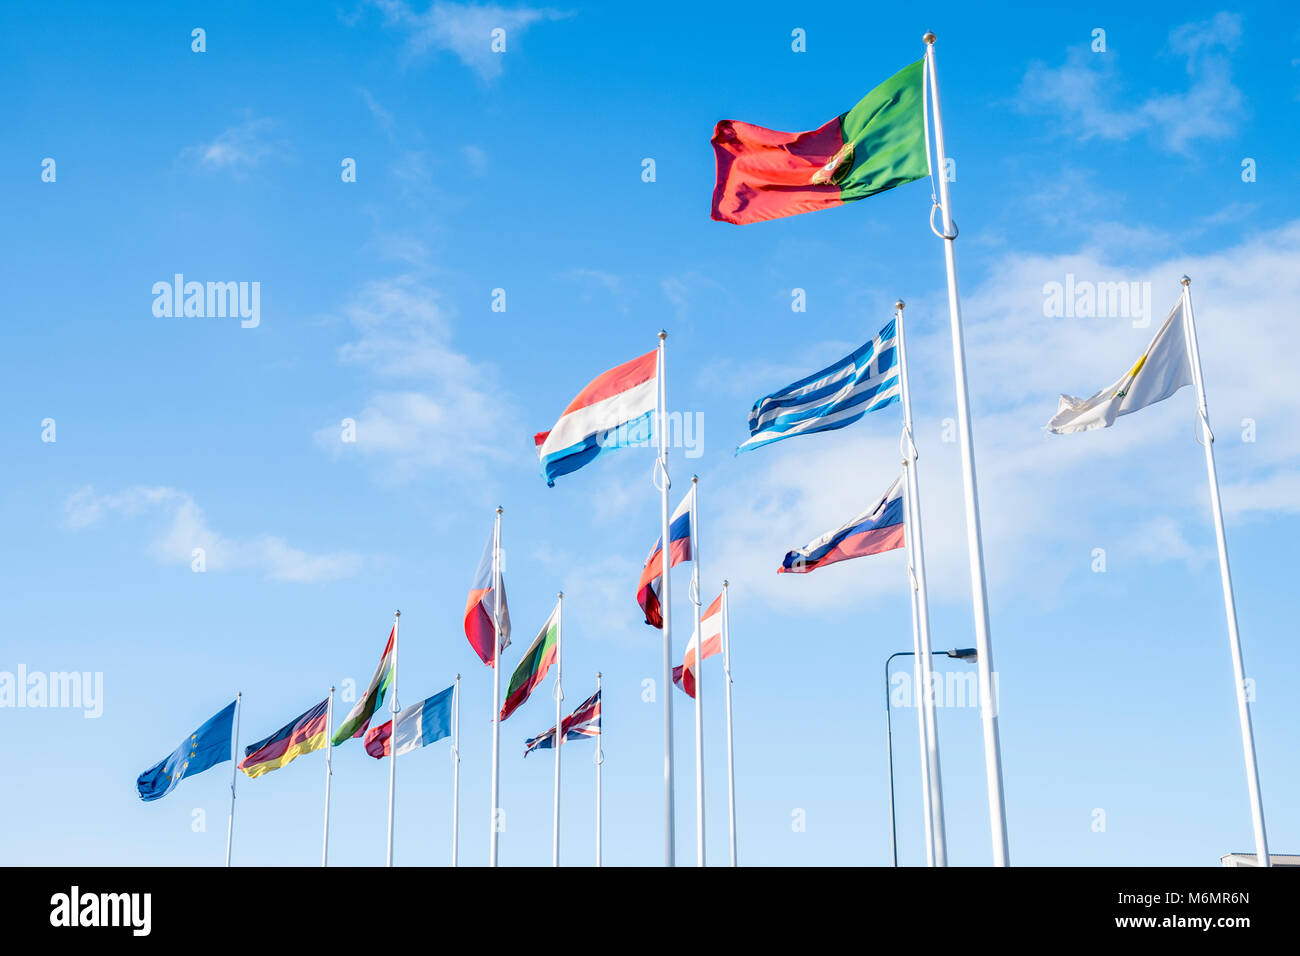 Many flags from the various nations of the EU (European Union) flying in the wind against a blue sky - Stock Image